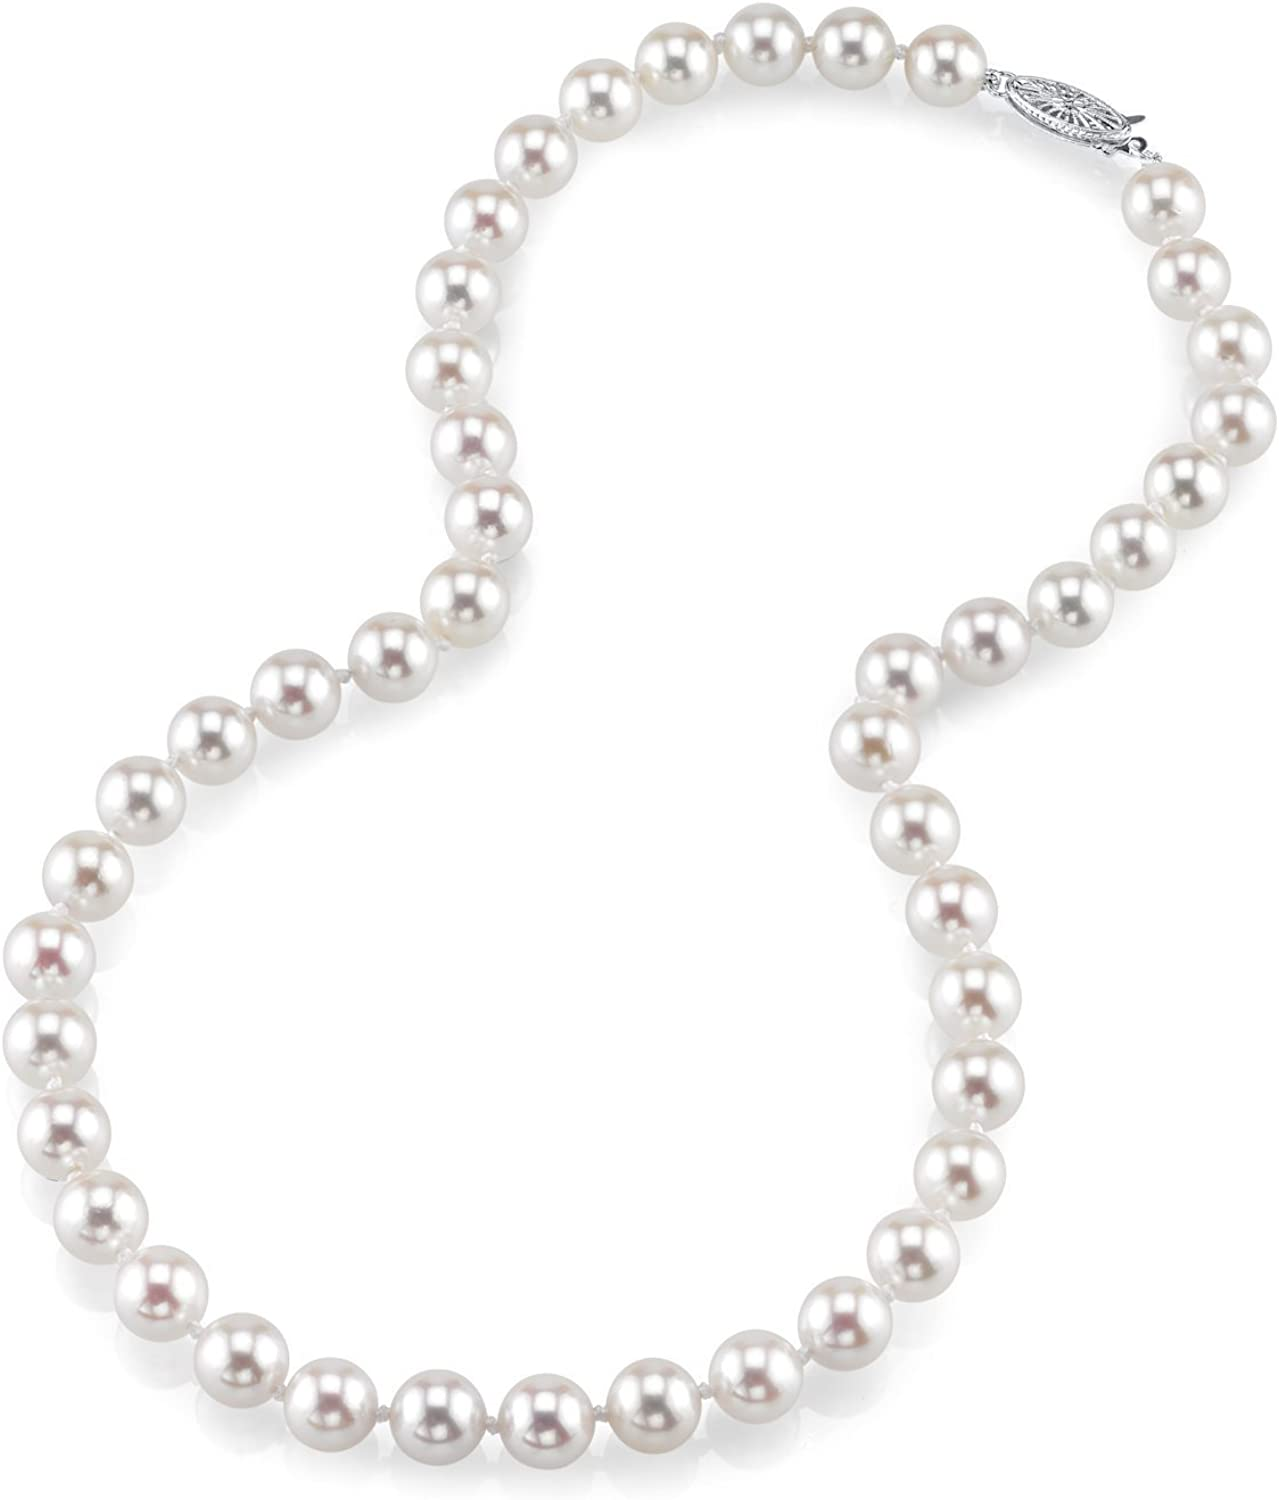 THE PEARL SOURCE 18K Gold Round Genuine White Japanese Akoya Saltwater Cultured Pearl Necklace in 17